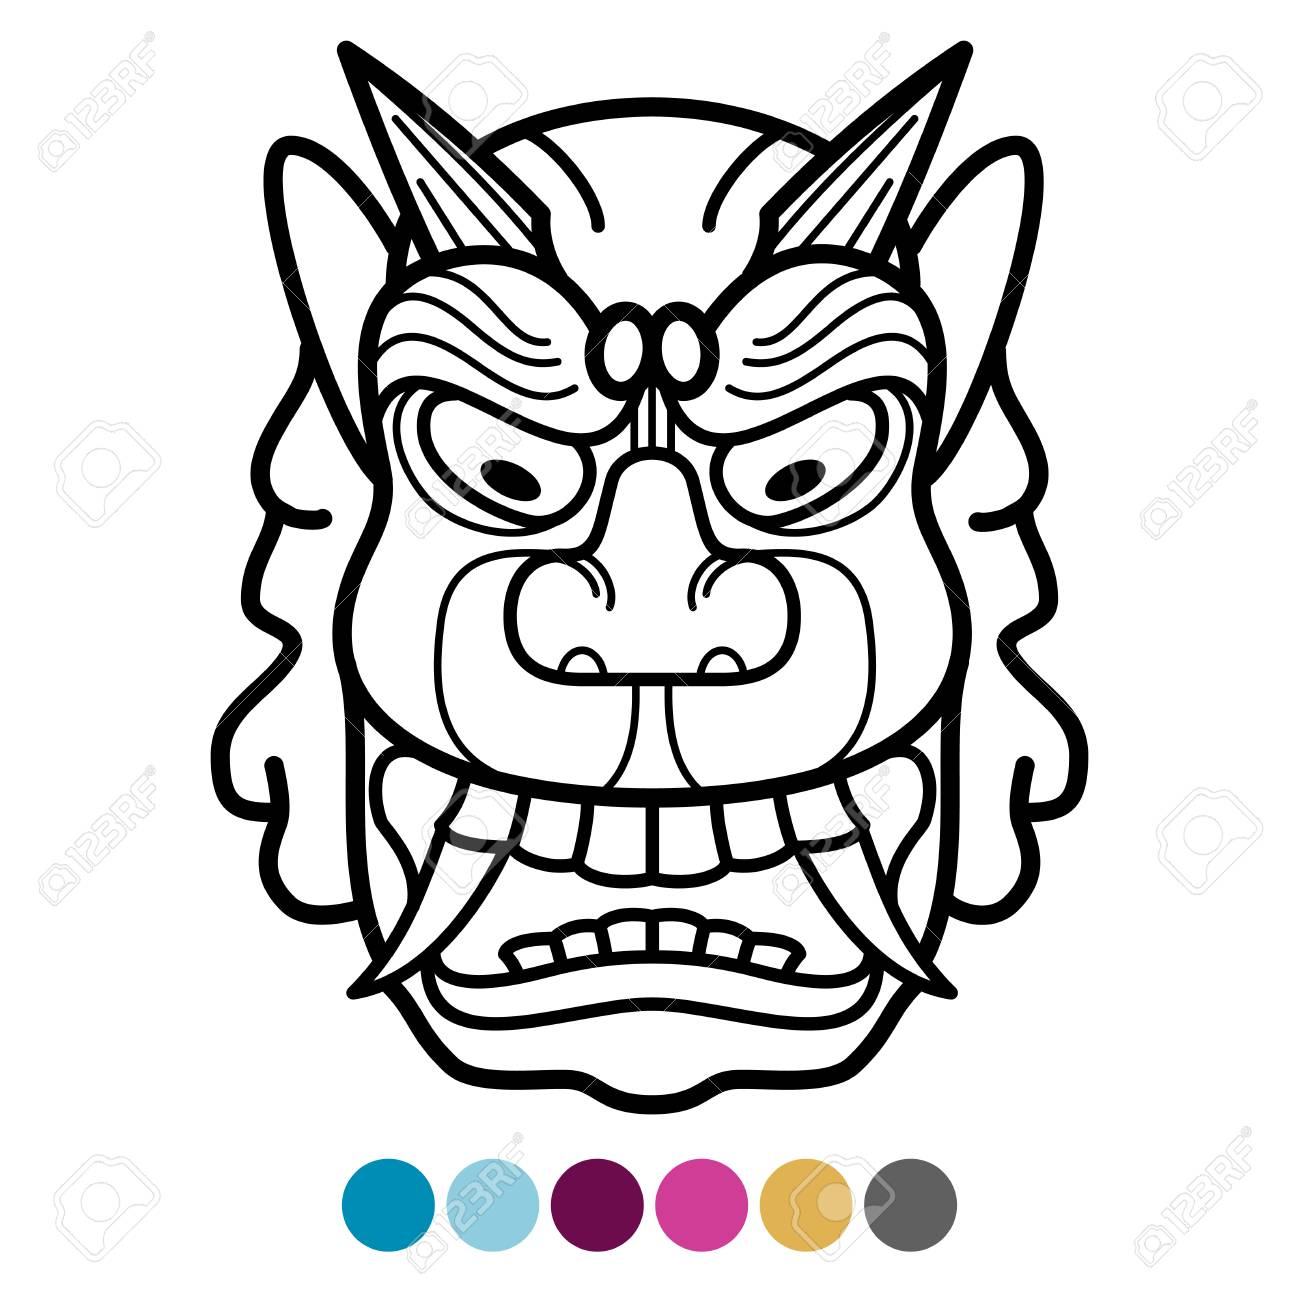 Angry African Traditional Mask Coloring Page Mexican Tribal Vector Illustration Stock